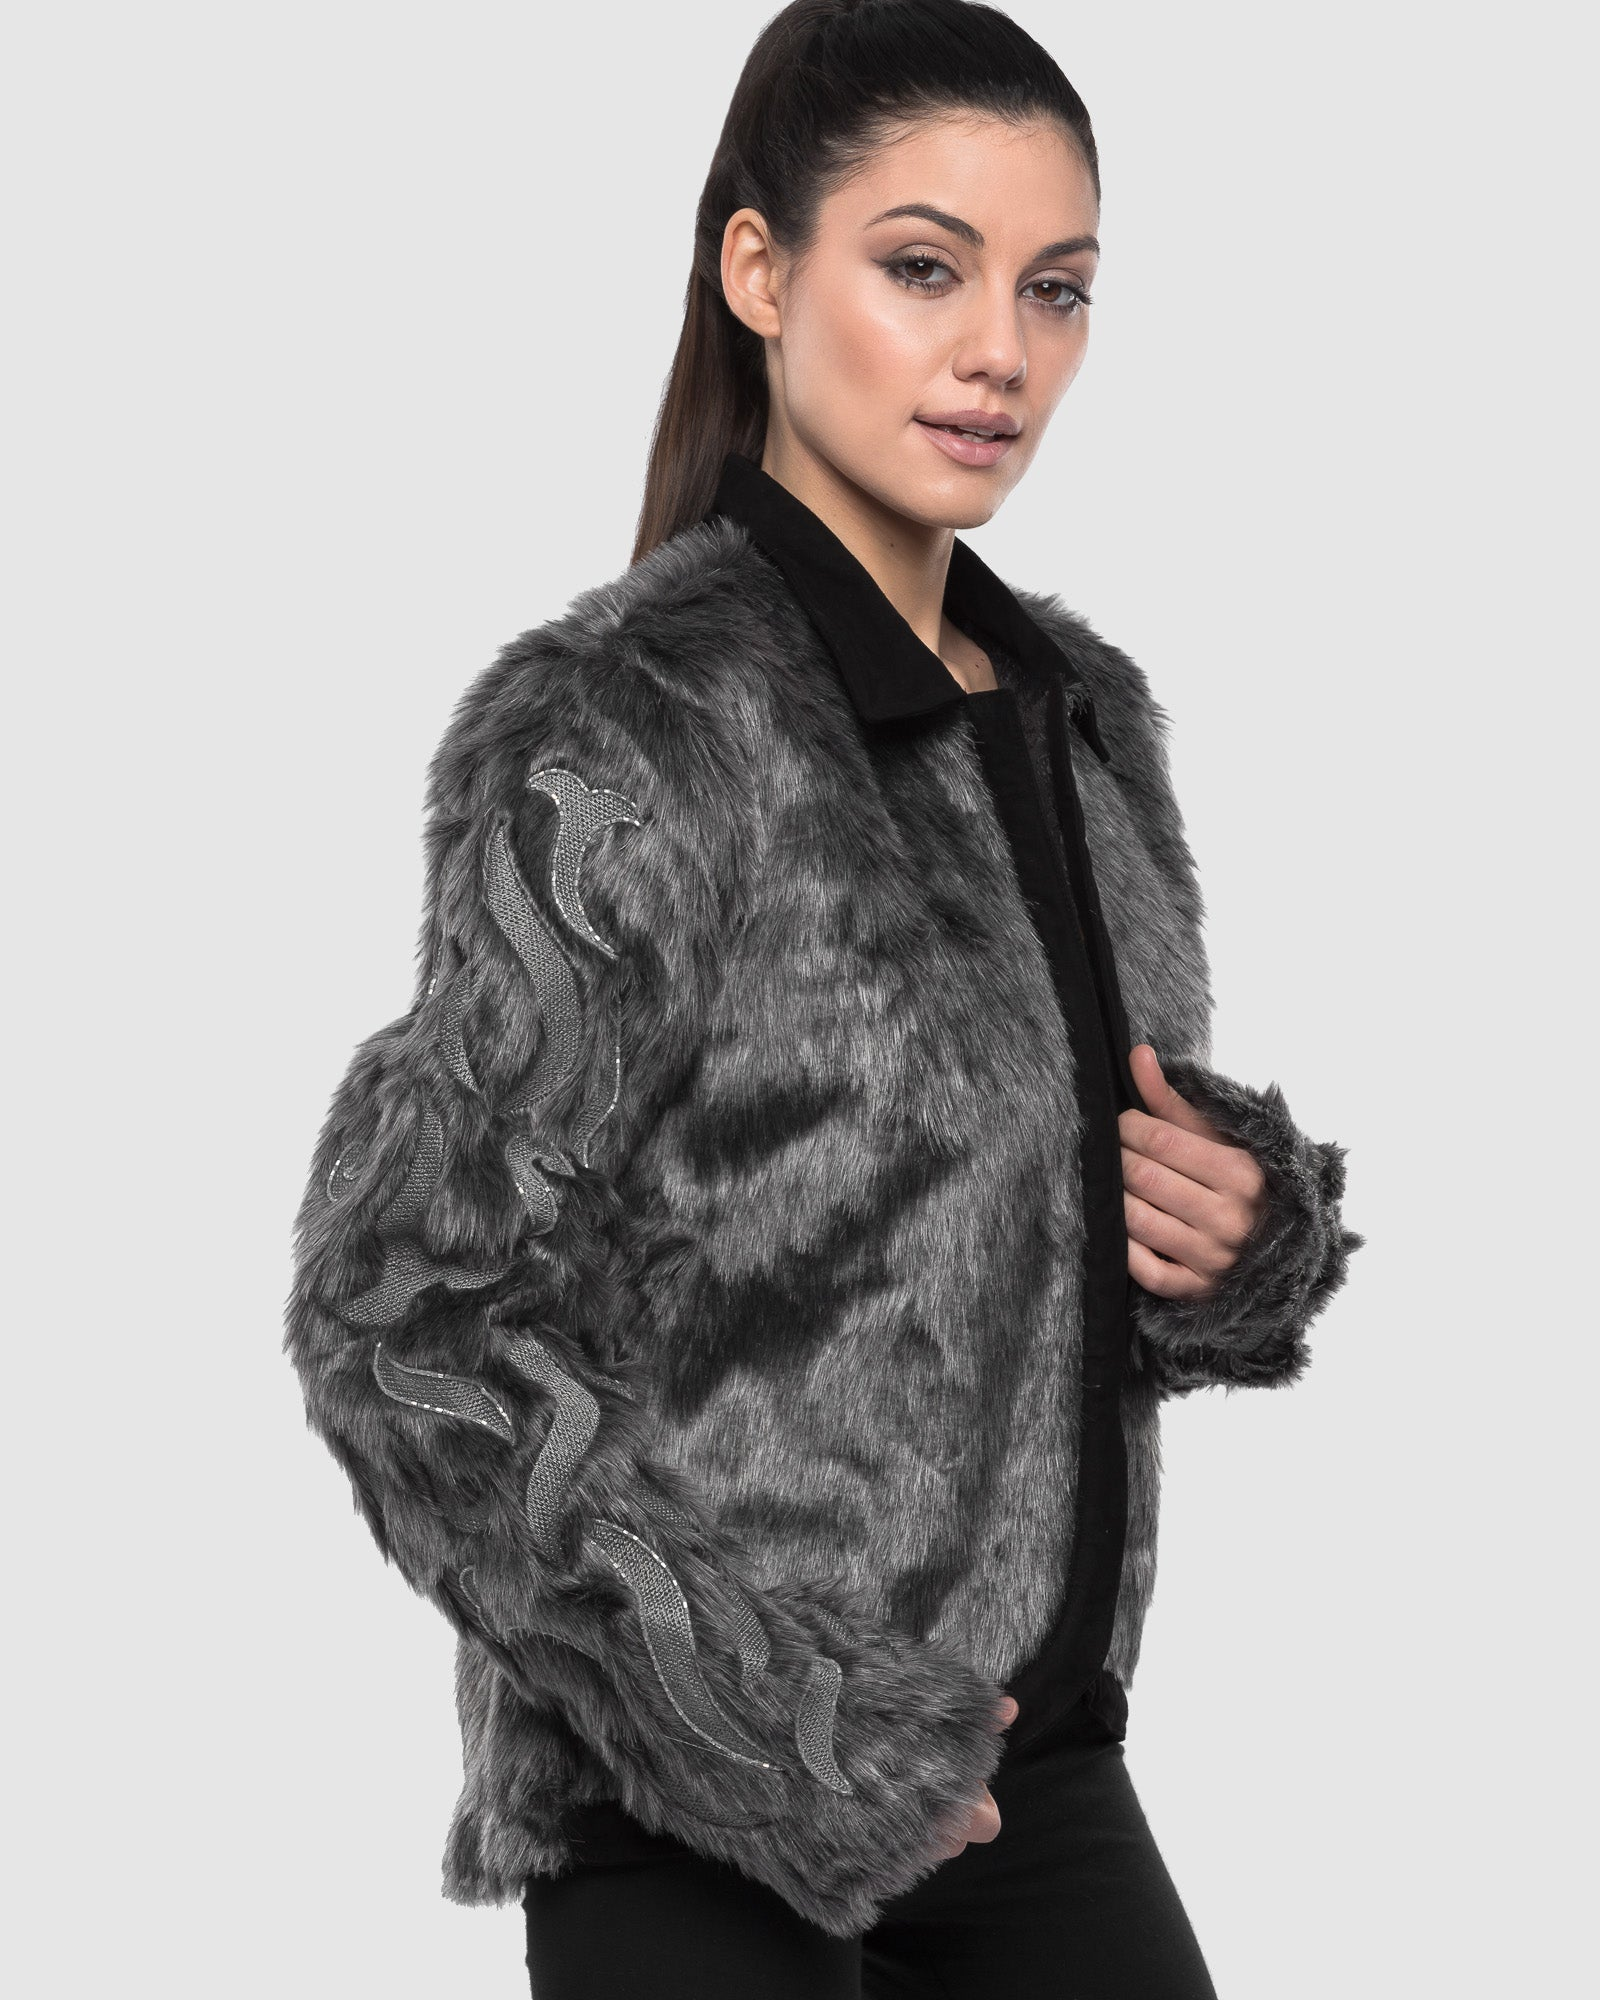 THE GREY SLEEVE EMBROIDERED FAUX FUR JACKET